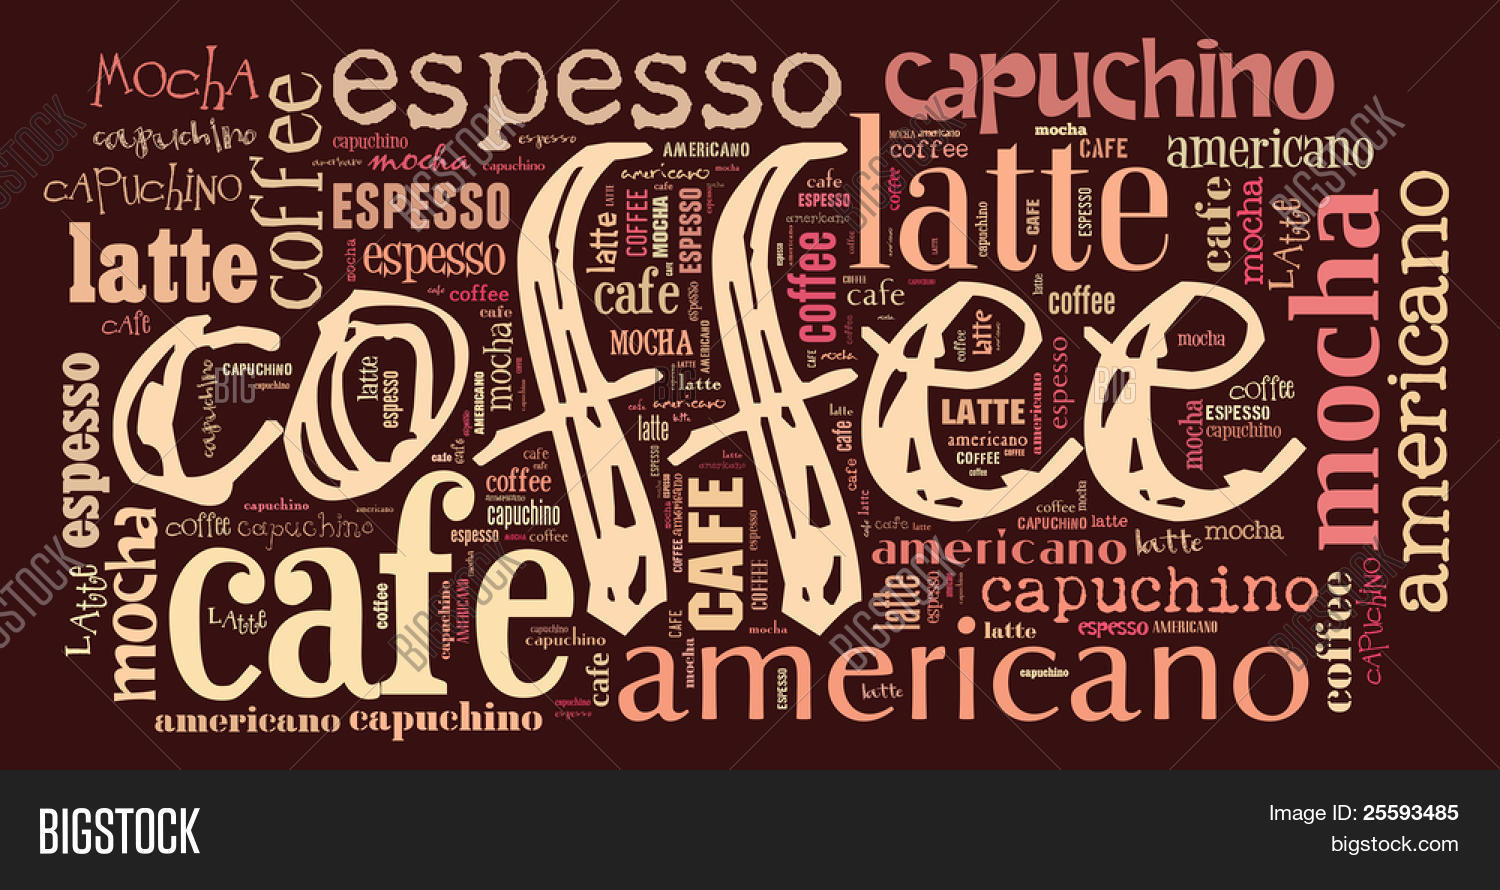 Kaffee Poster Poster Decorate Cafe Coffee Shop Image And Photo Bigstock